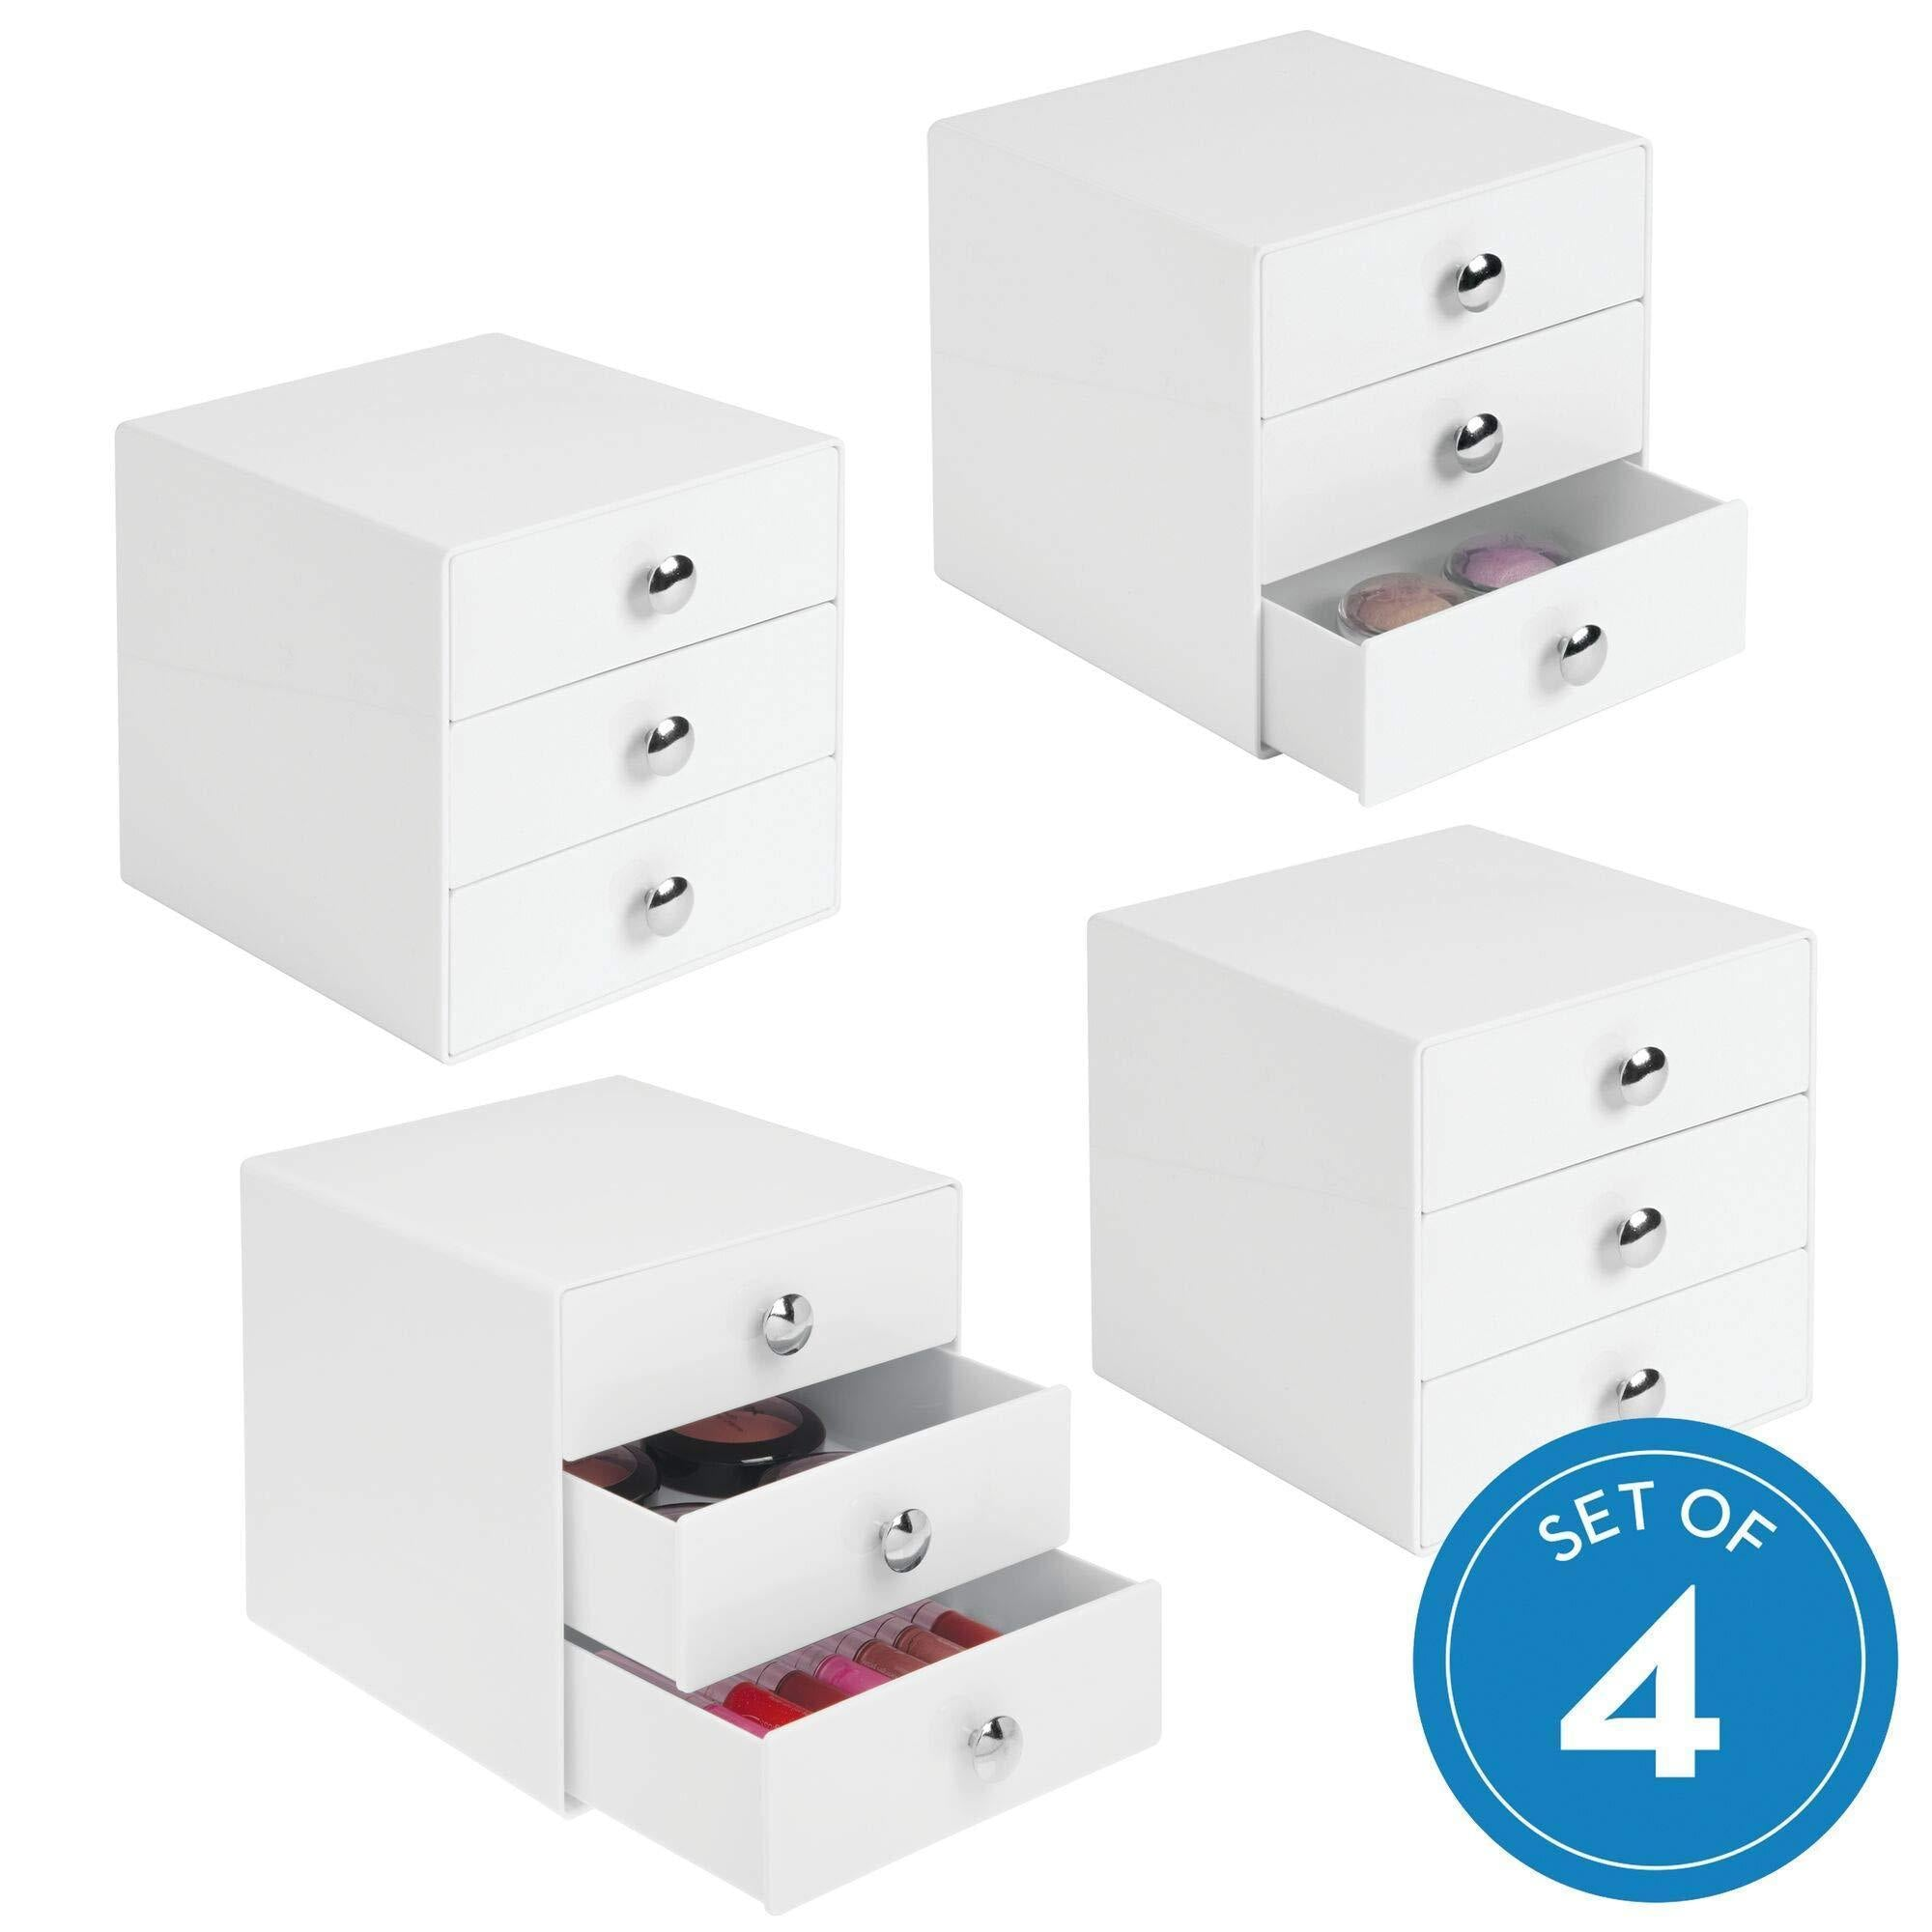 "iDesign Plastic 3 Jewelry Box, Compact Storage Organization Drawers Set for Cosmetics, Makeup, Hair Care, Bathroom, Office, Dorm, Desk, Countertop, 6.5"" x 6.5"" x 6.5"", Set of 4, White"